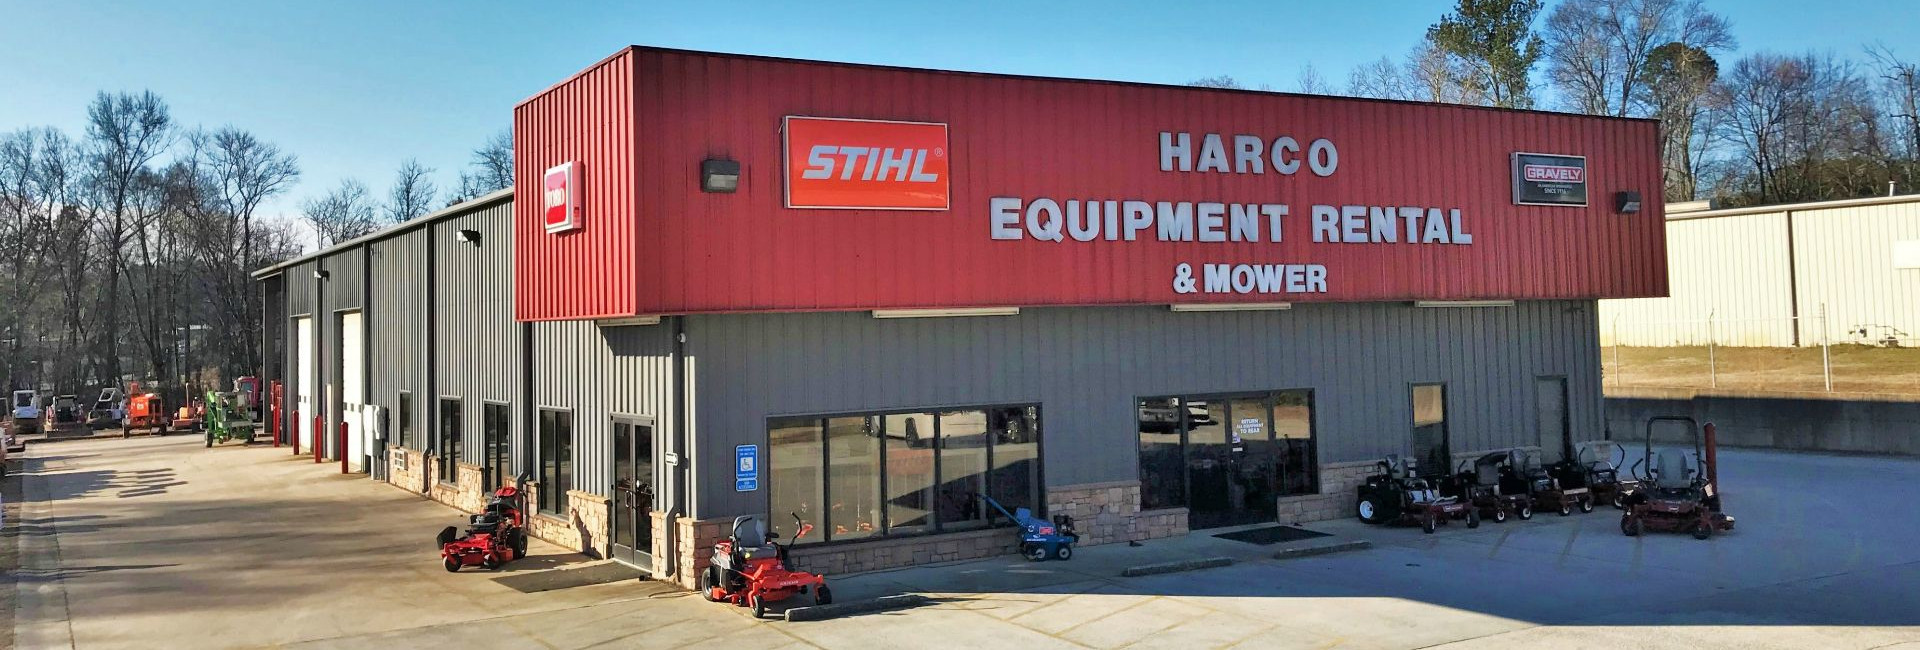 Equipment rentals in Winder Georgia, Jefferson, Buford, Monroe, Bethlehem, Suwanee GA